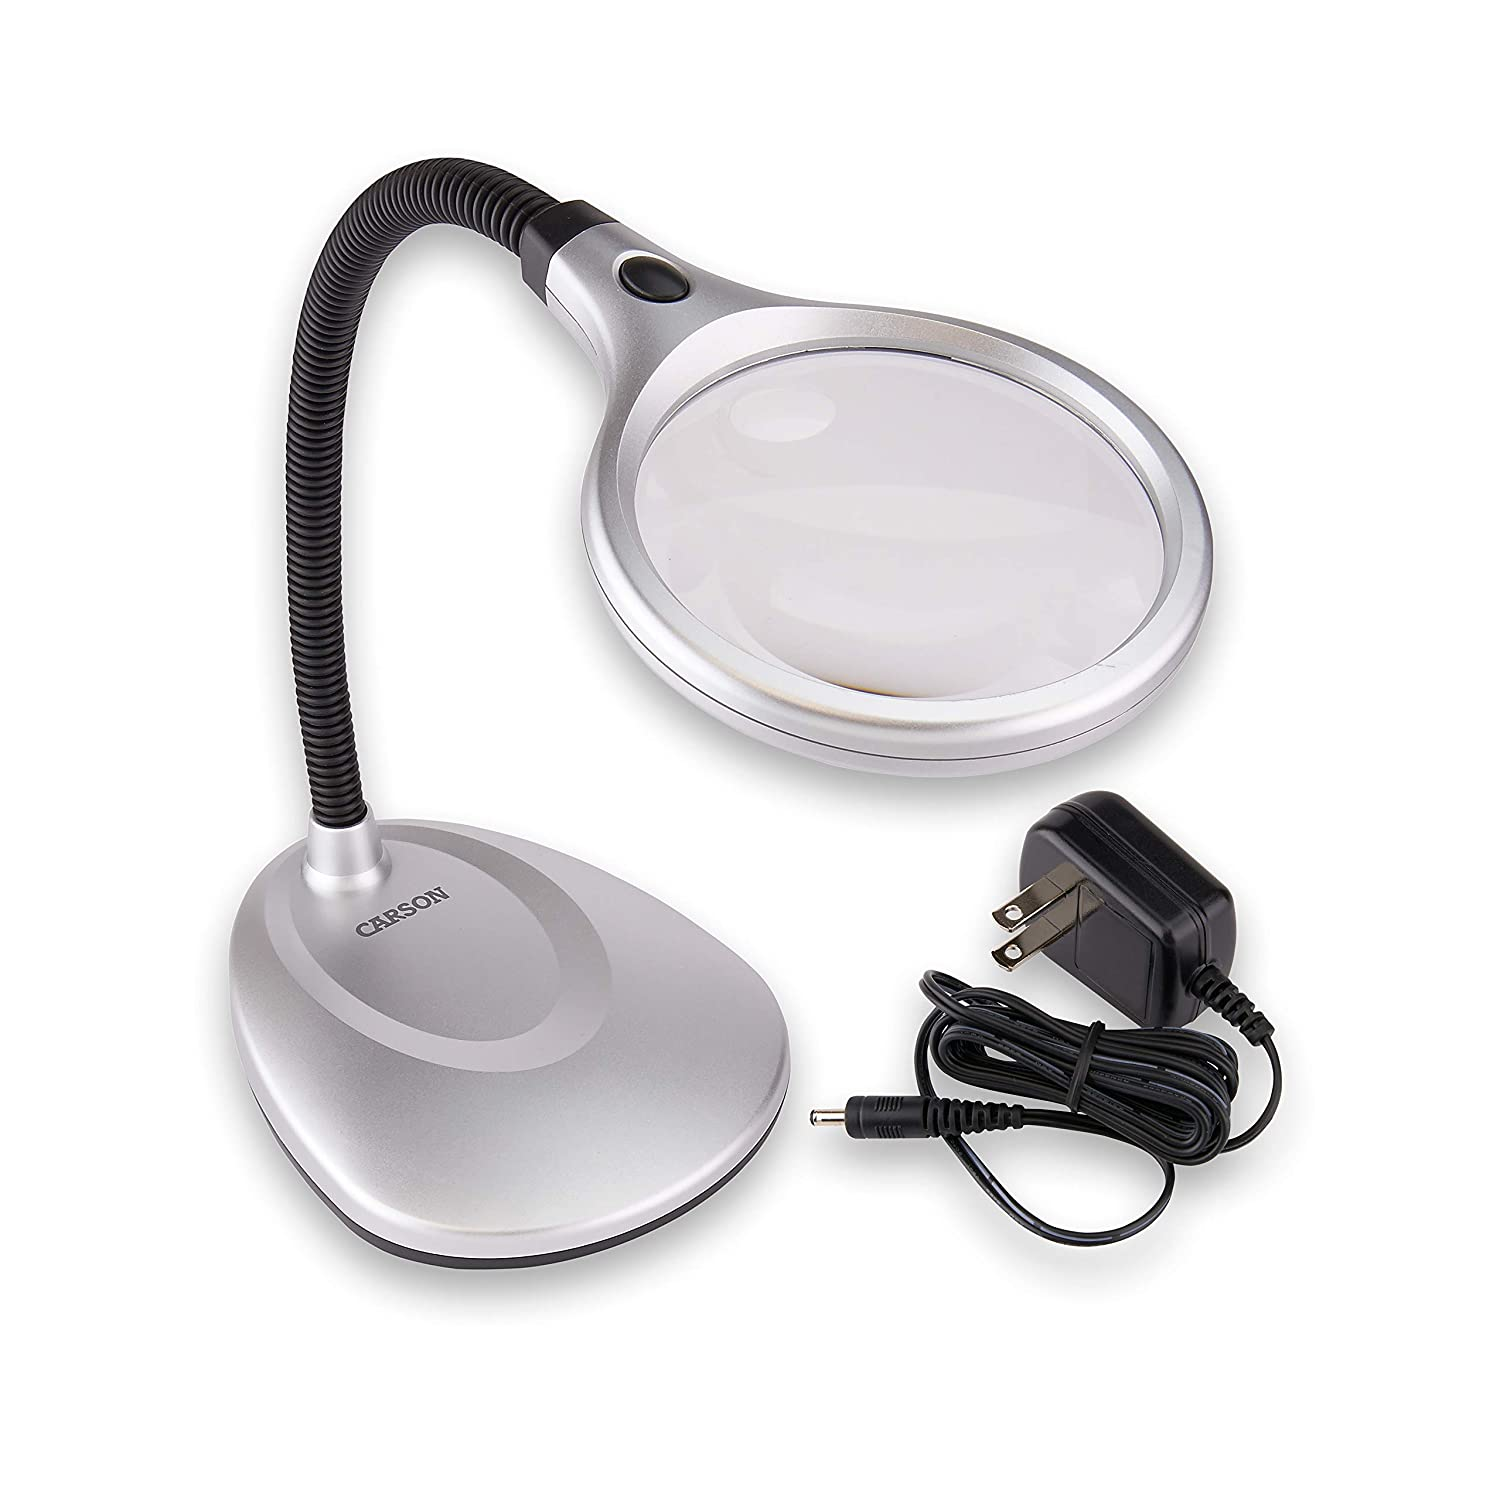 Top 10 Best Magnifying Lamp Reviews in 2020 5